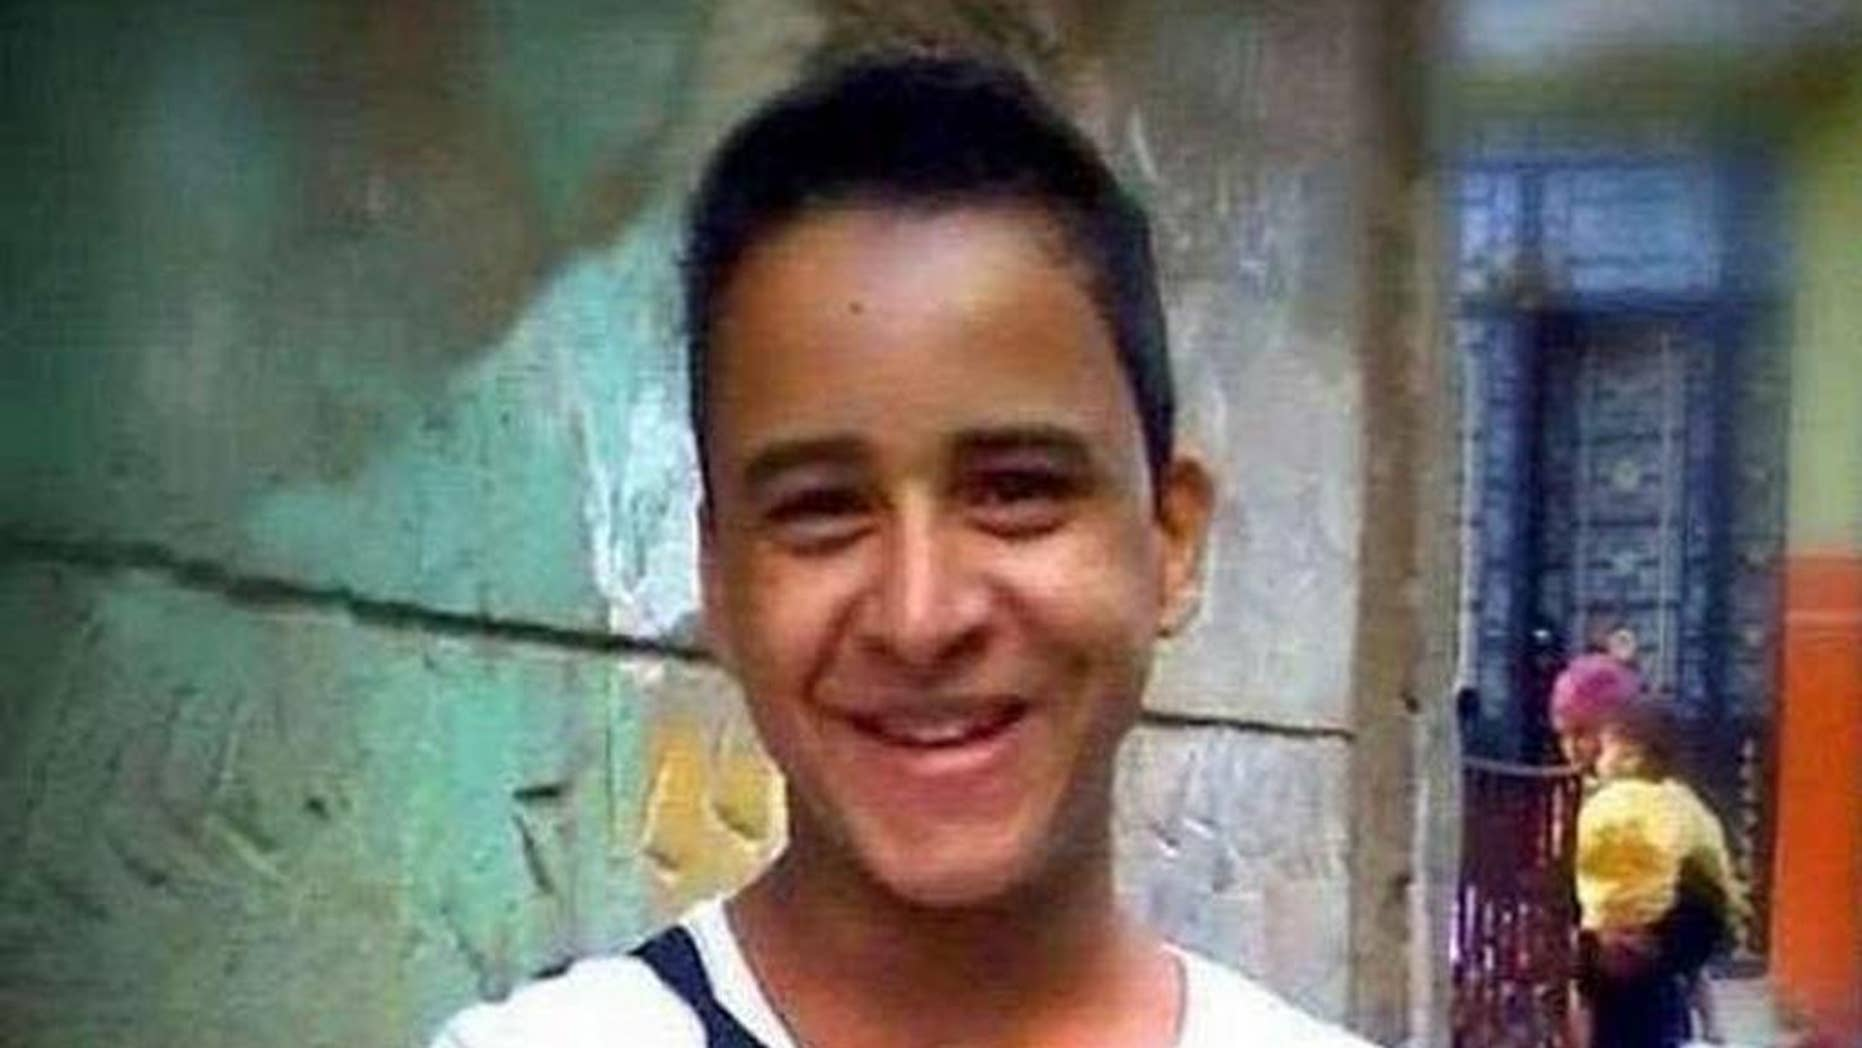 """This undated photo provided by the family of Mahmoud Mohammed Ahmed, shows Mahmoud Mohammed Ahmed in Cairo, Egypt prior to his arrest in Jan 2014 while wearing a T-shirt that bore the slogan """"A nation without torture."""" An Egyptian court on Thursday, March 24, 2016 ordered the release of Ahmed, who was accused by police of taking part in unauthorized demonstrations, possession of explosives and paying money to others to take part in street protests, his brother and lawyer told The Associated Press. He was never formally charged during his two years in detention. (Family of Mahmoud Mohammed Ahmed via AP)"""